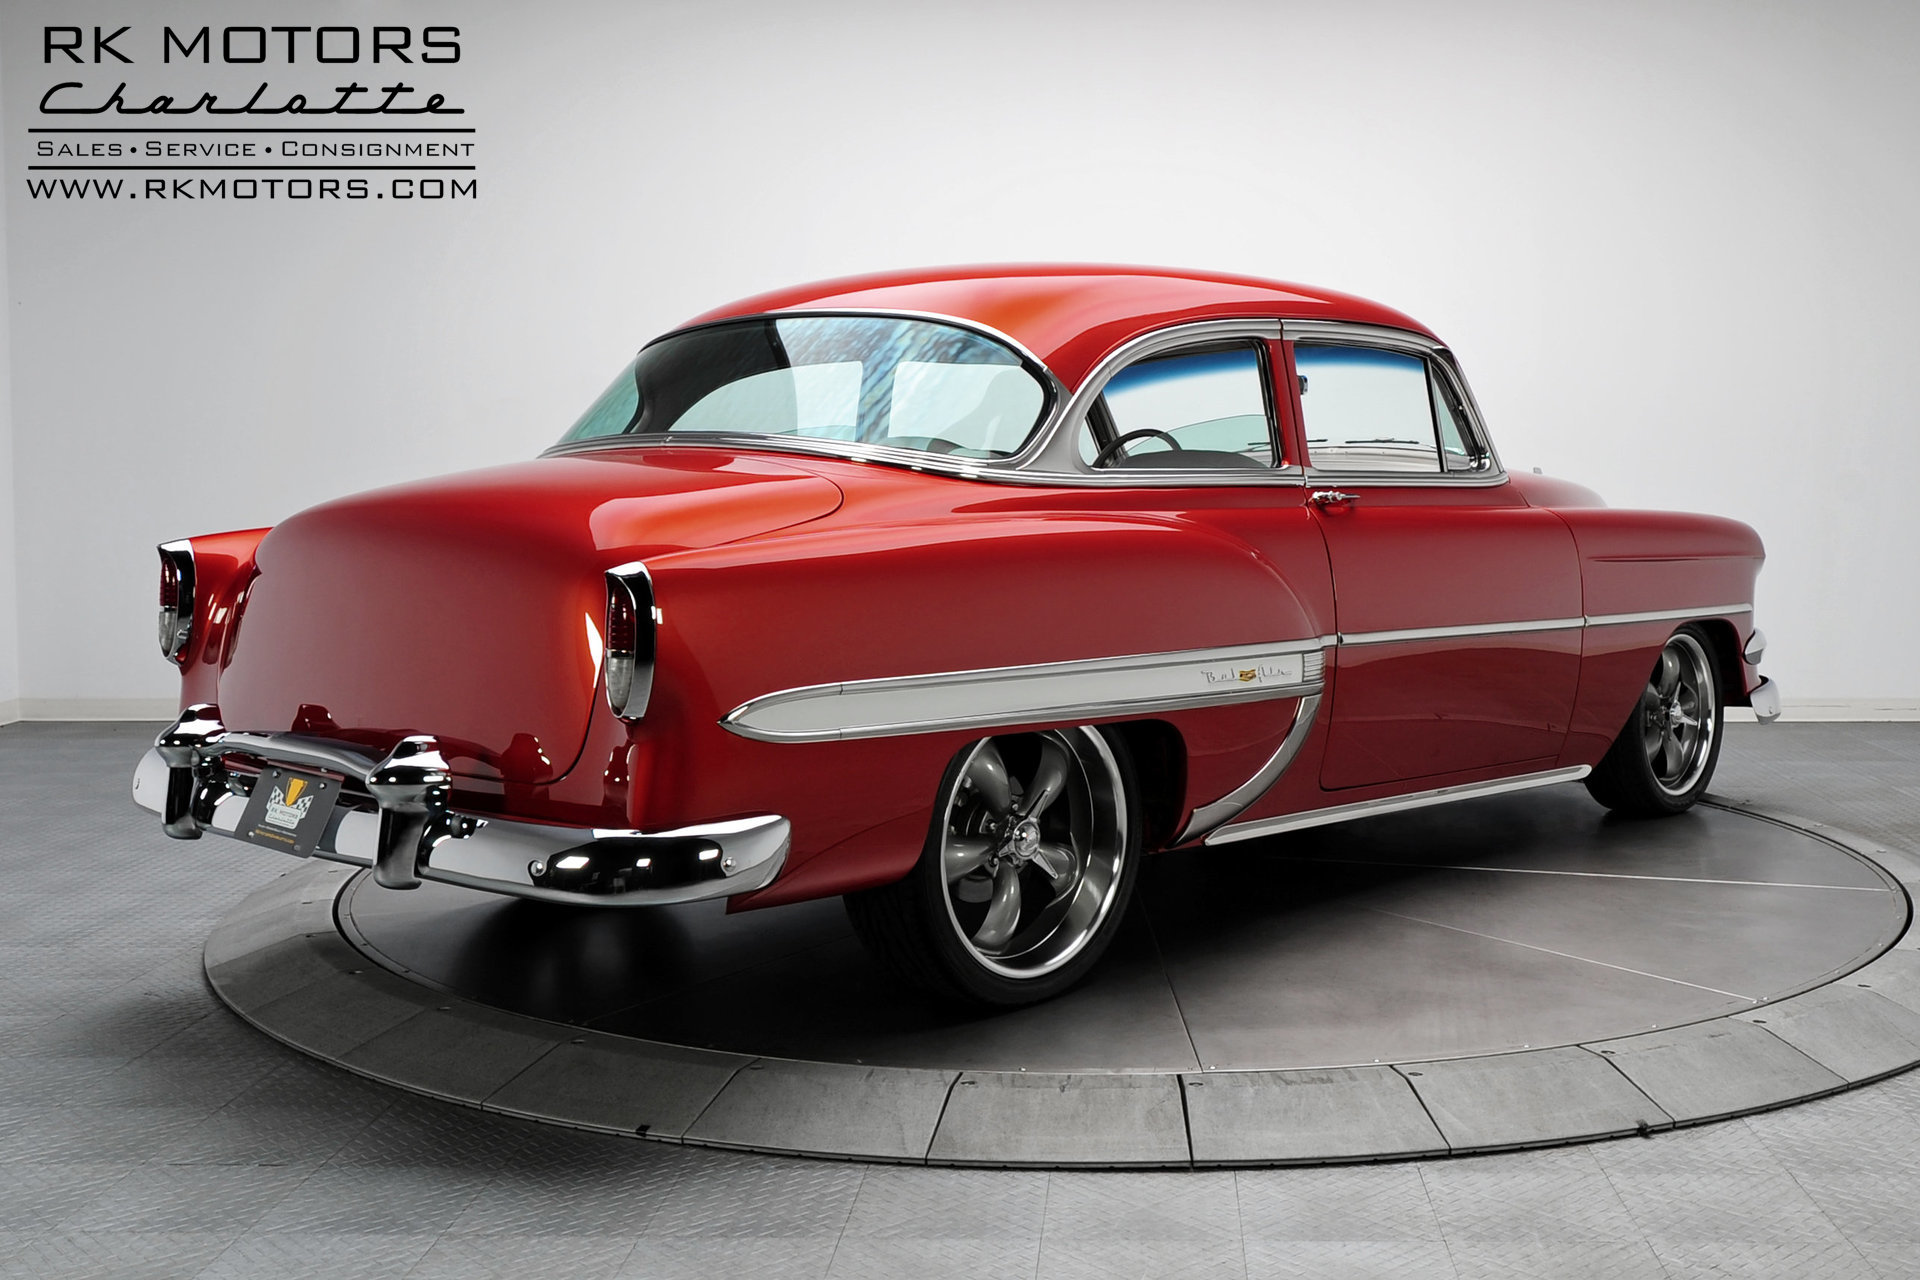 133058 1954 Chevrolet Bel Air Rk Motors Classic Cars For Sale 4 Door